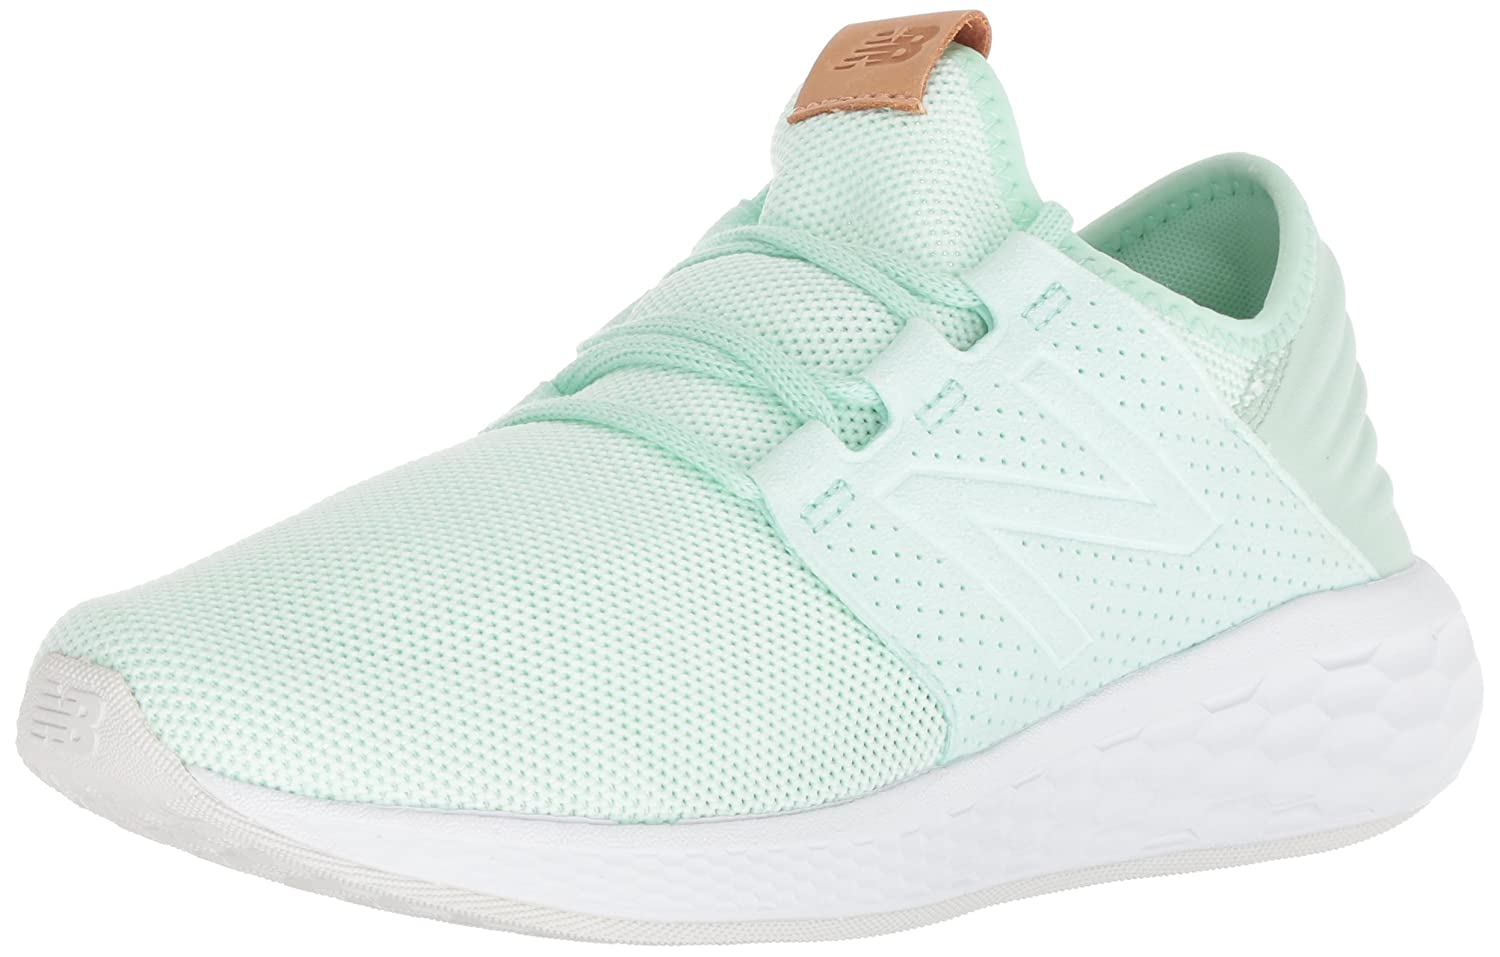 New Balance Women's Cruz V2 Fresh Foam Running Shoe B075R7D763 6 B(M) US|Seafoam Green